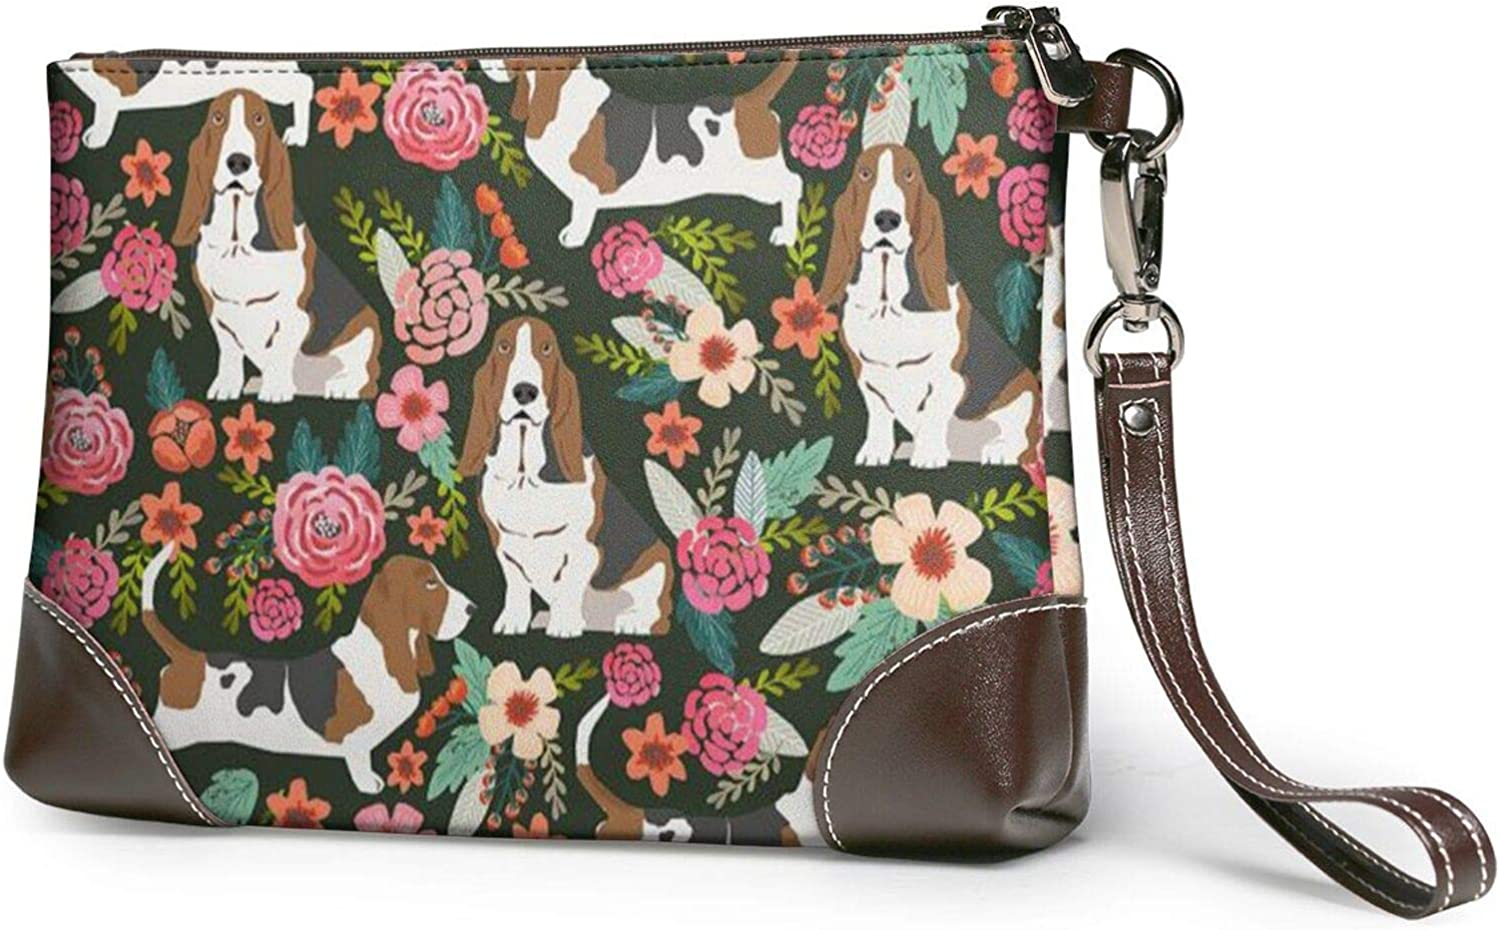 Dog Printed Women'S Wristlet Handbags Purses Wallets Evening Leather Clutch Bags 8in X 5.5in X 1.5in